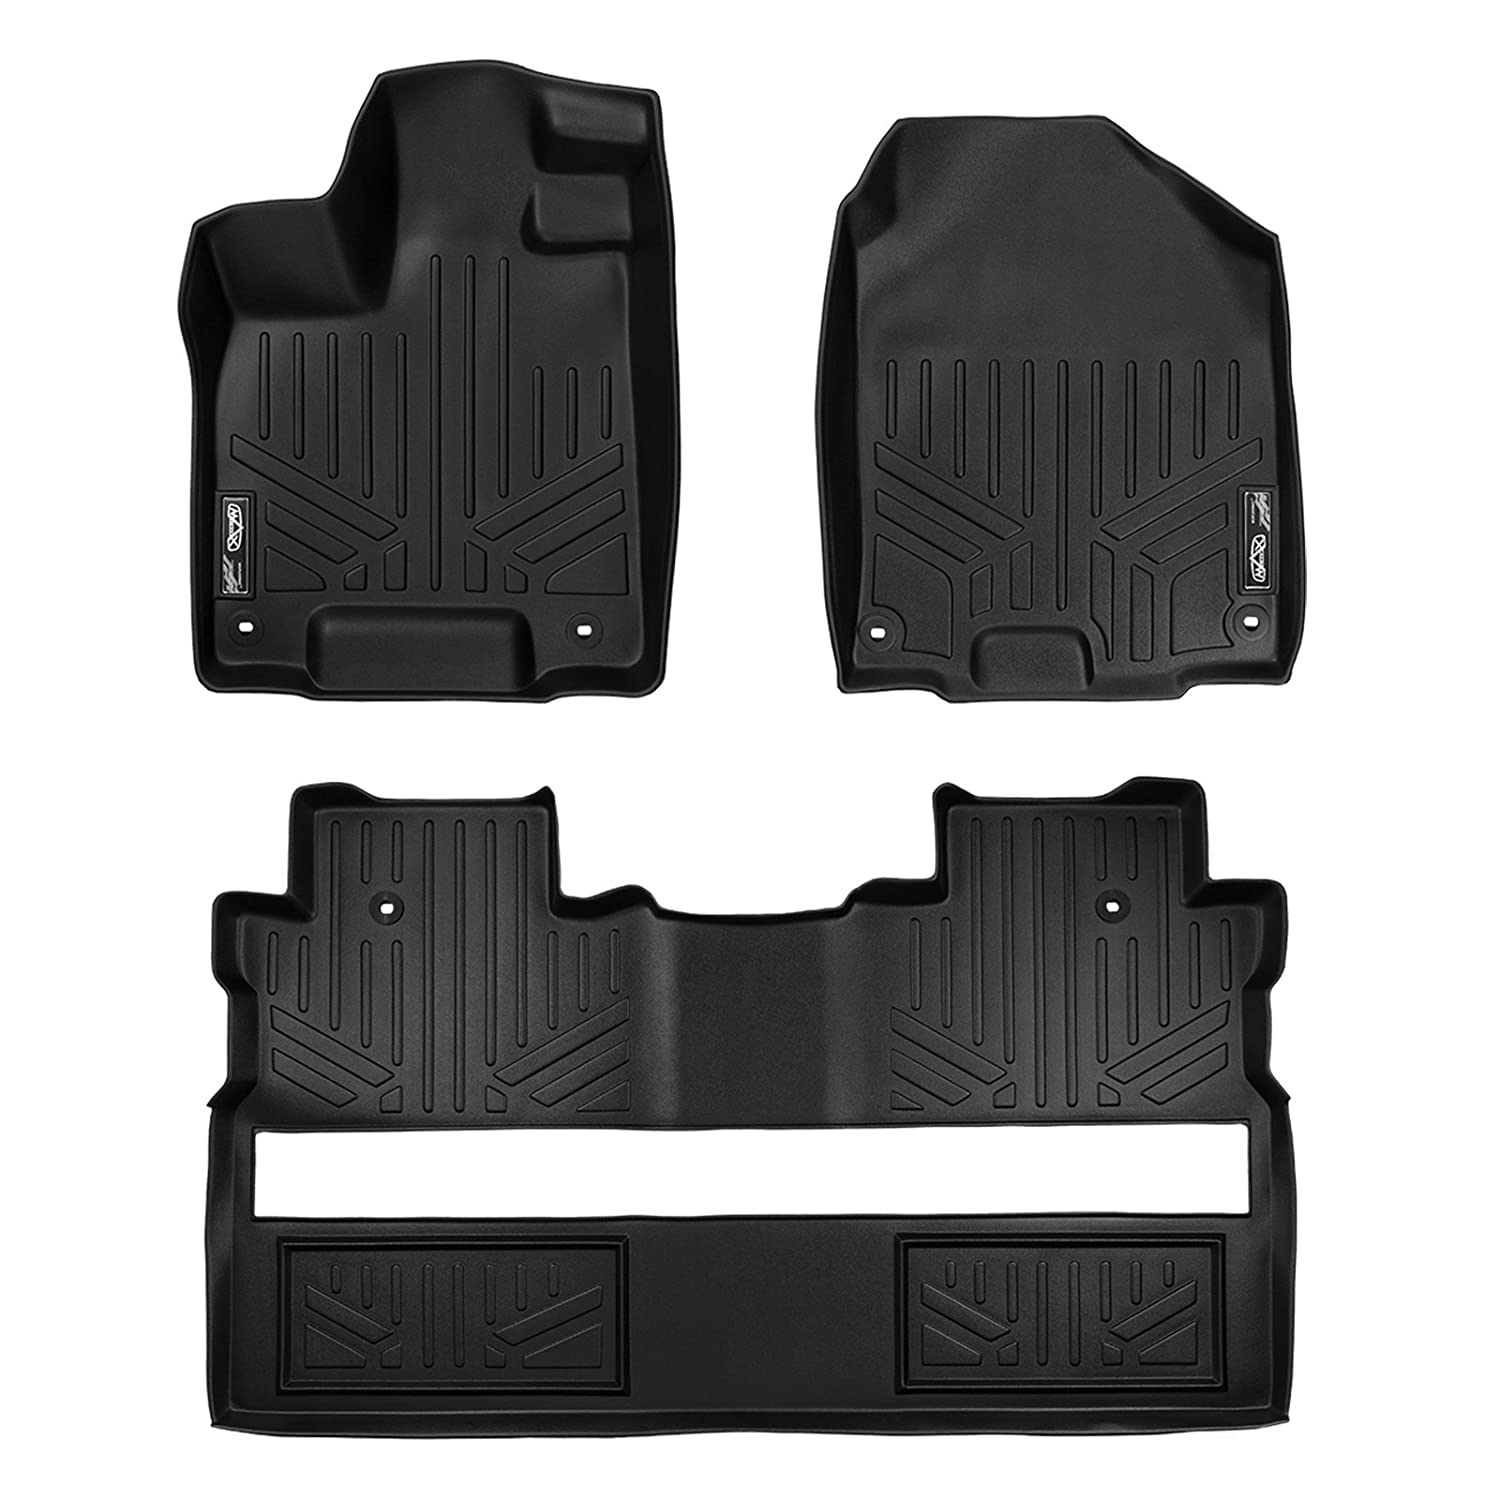 MAX LINER A0240/B0240 Custom Fit Floor Mats 2 Row Liner Set Black for 2017-2019 Honda Ridgeline Crew Cab - All Models